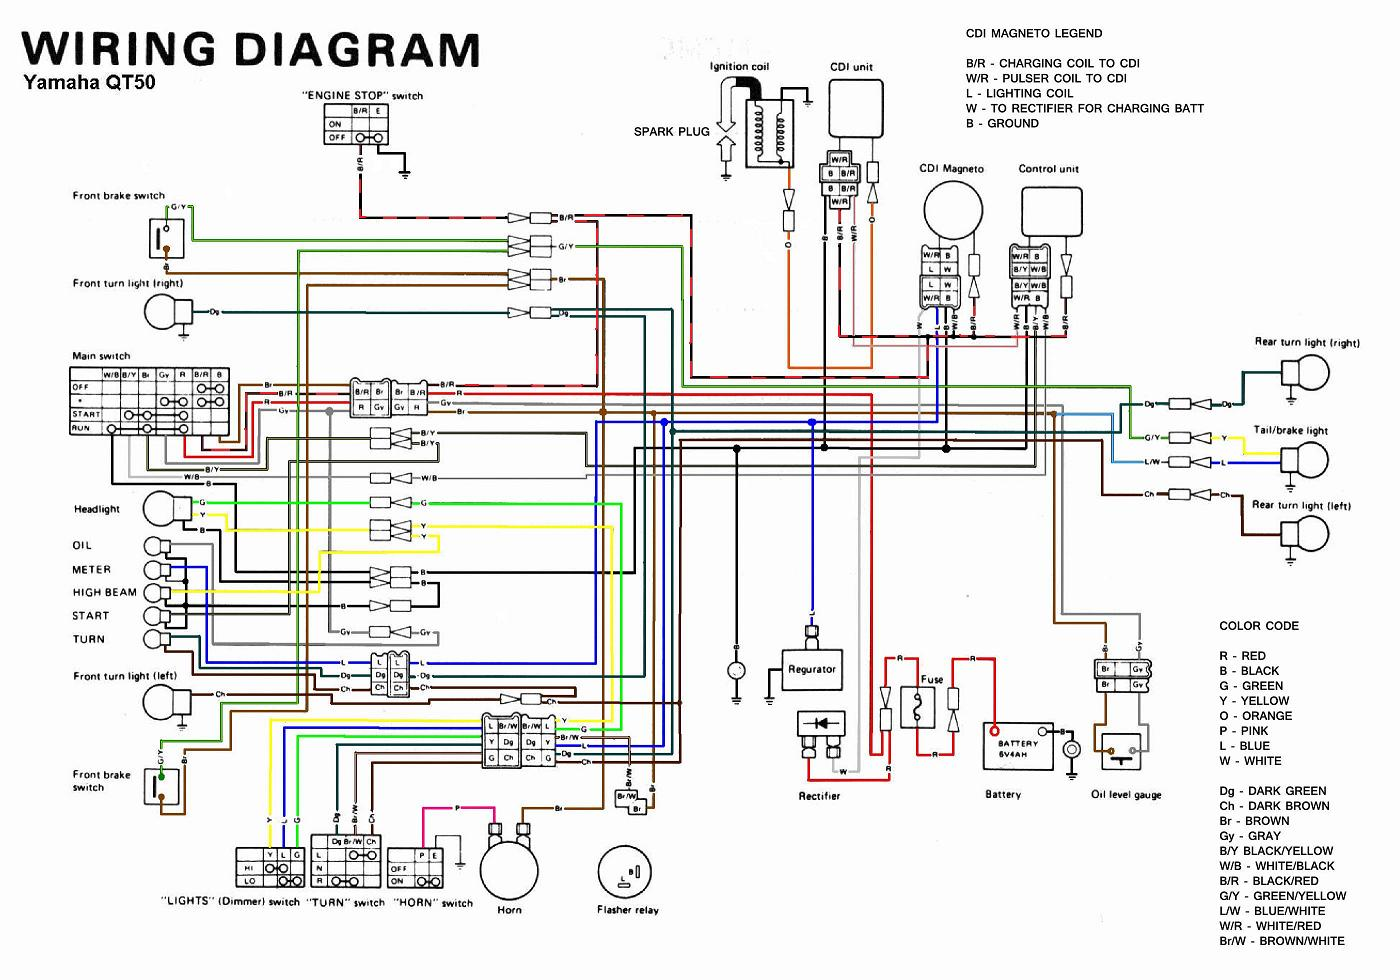 Yamaha QT50 Wiring Diagram yamaha qt50 wiring diagram yamaha qt50 luvin and other nopeds yamaha virago 250 wiring diagram at edmiracle.co